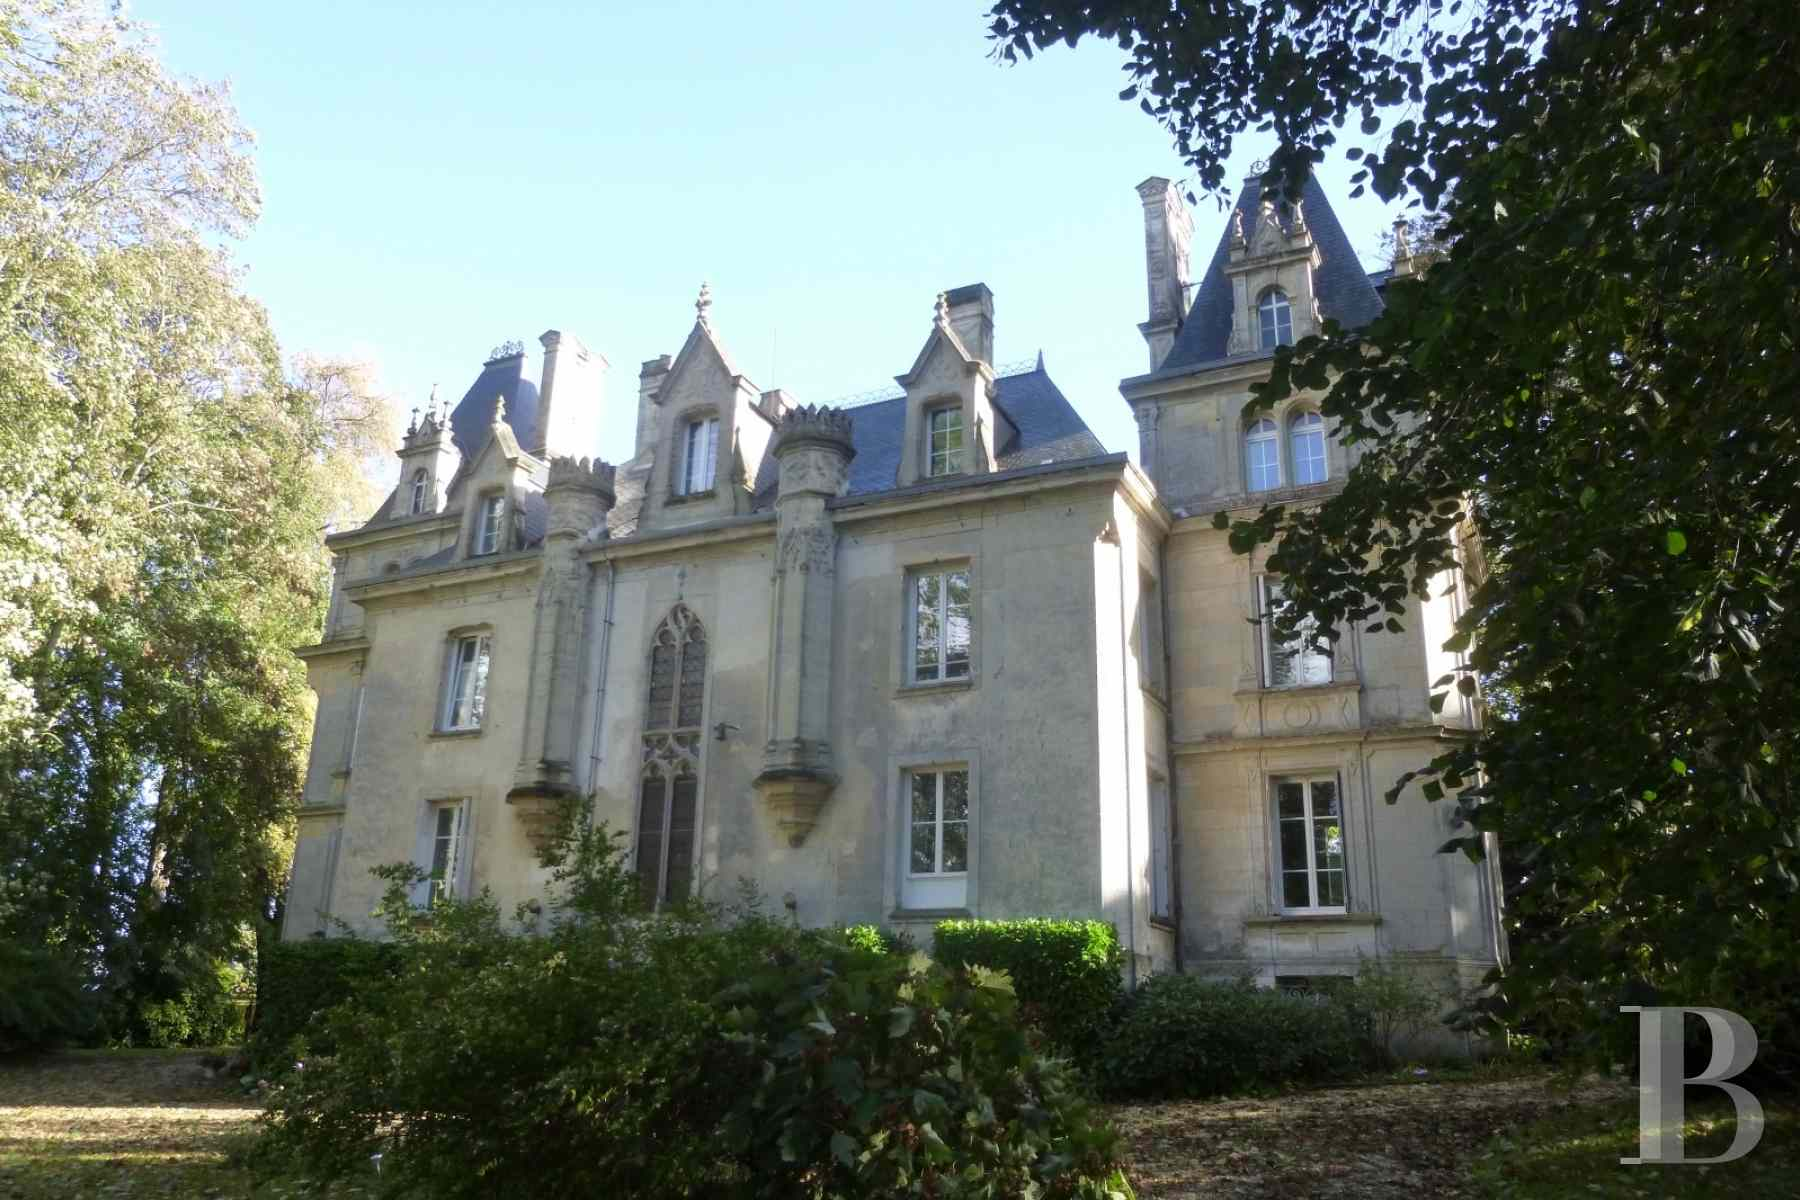 chateaux for sale France lower normandy calvados department - 2 zoom